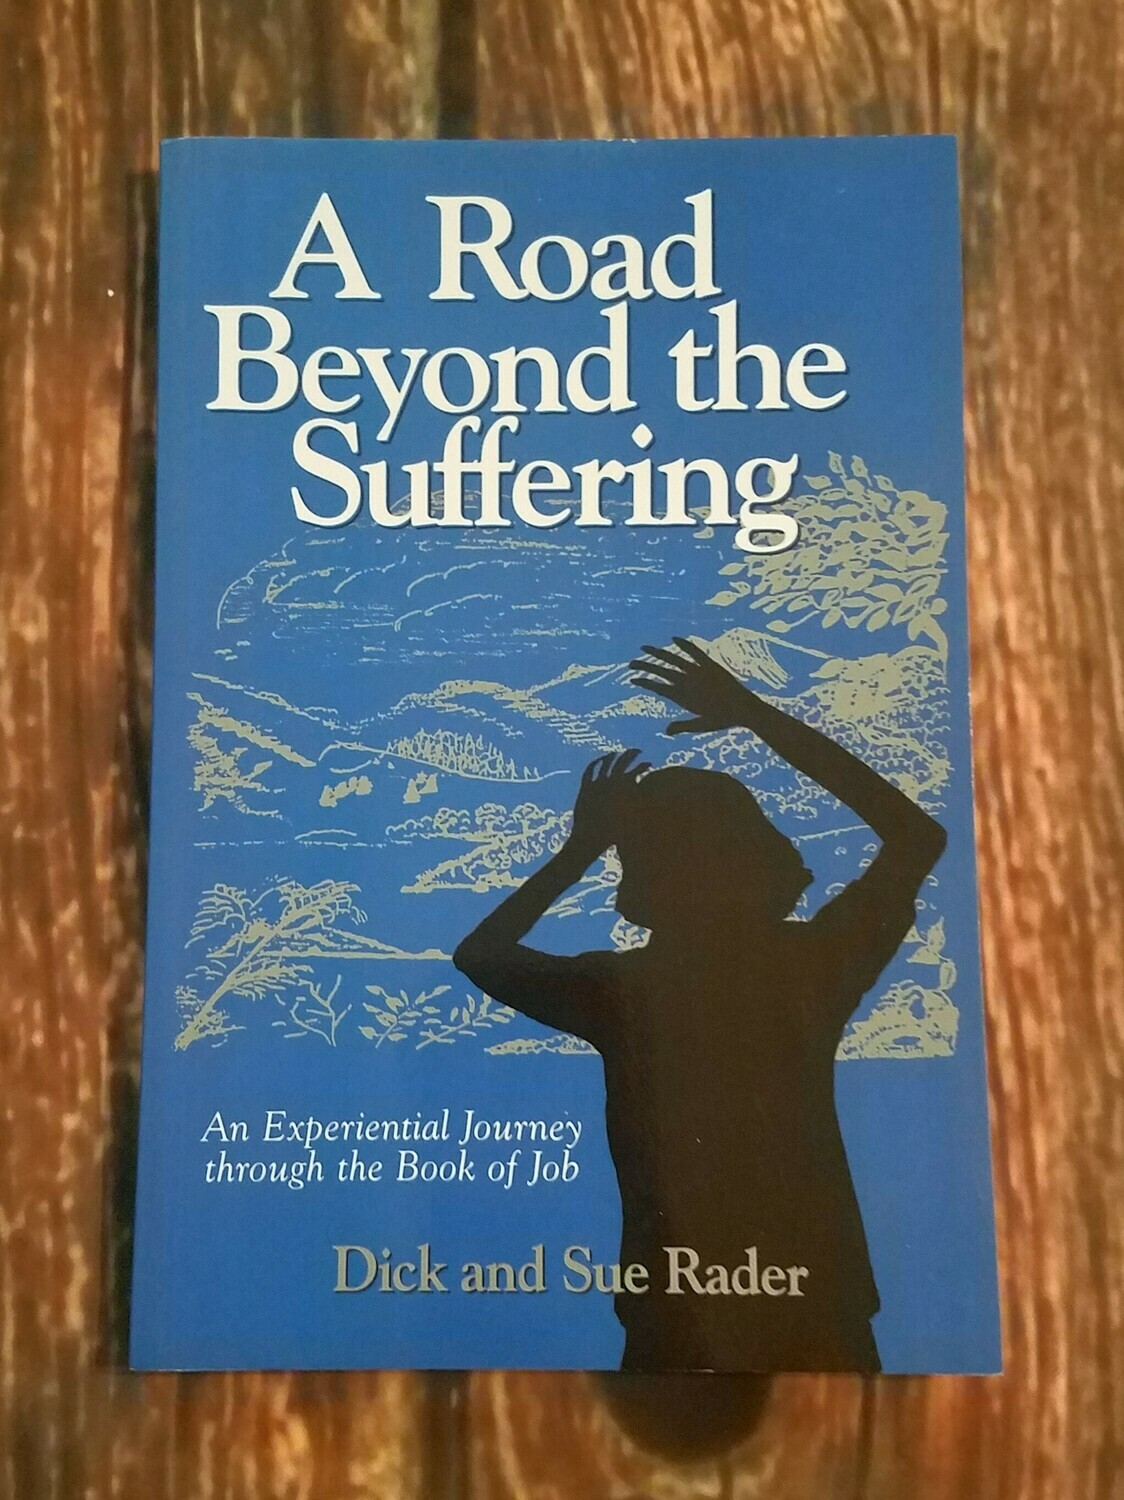 A Road Beyond the Suffering by Dick and Sue Rader